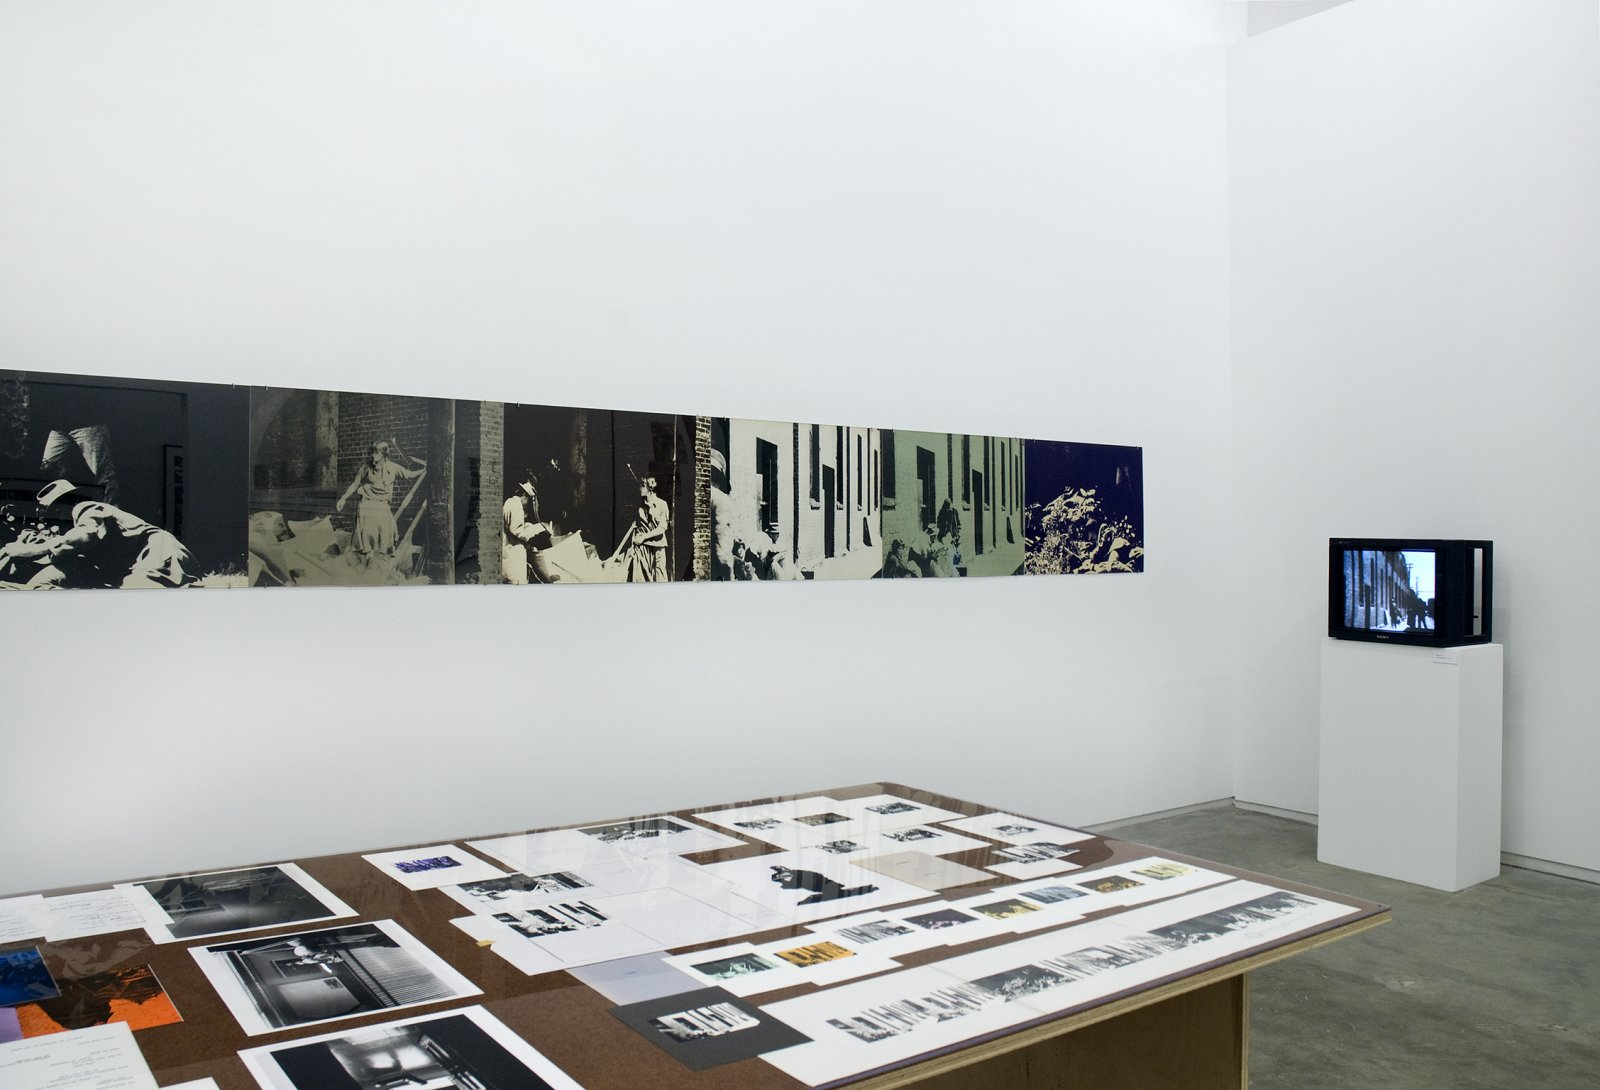 Ian Wallace, installation view, Works 1970–1979, Catriona Jeffries, 2009 by Ian Wallace